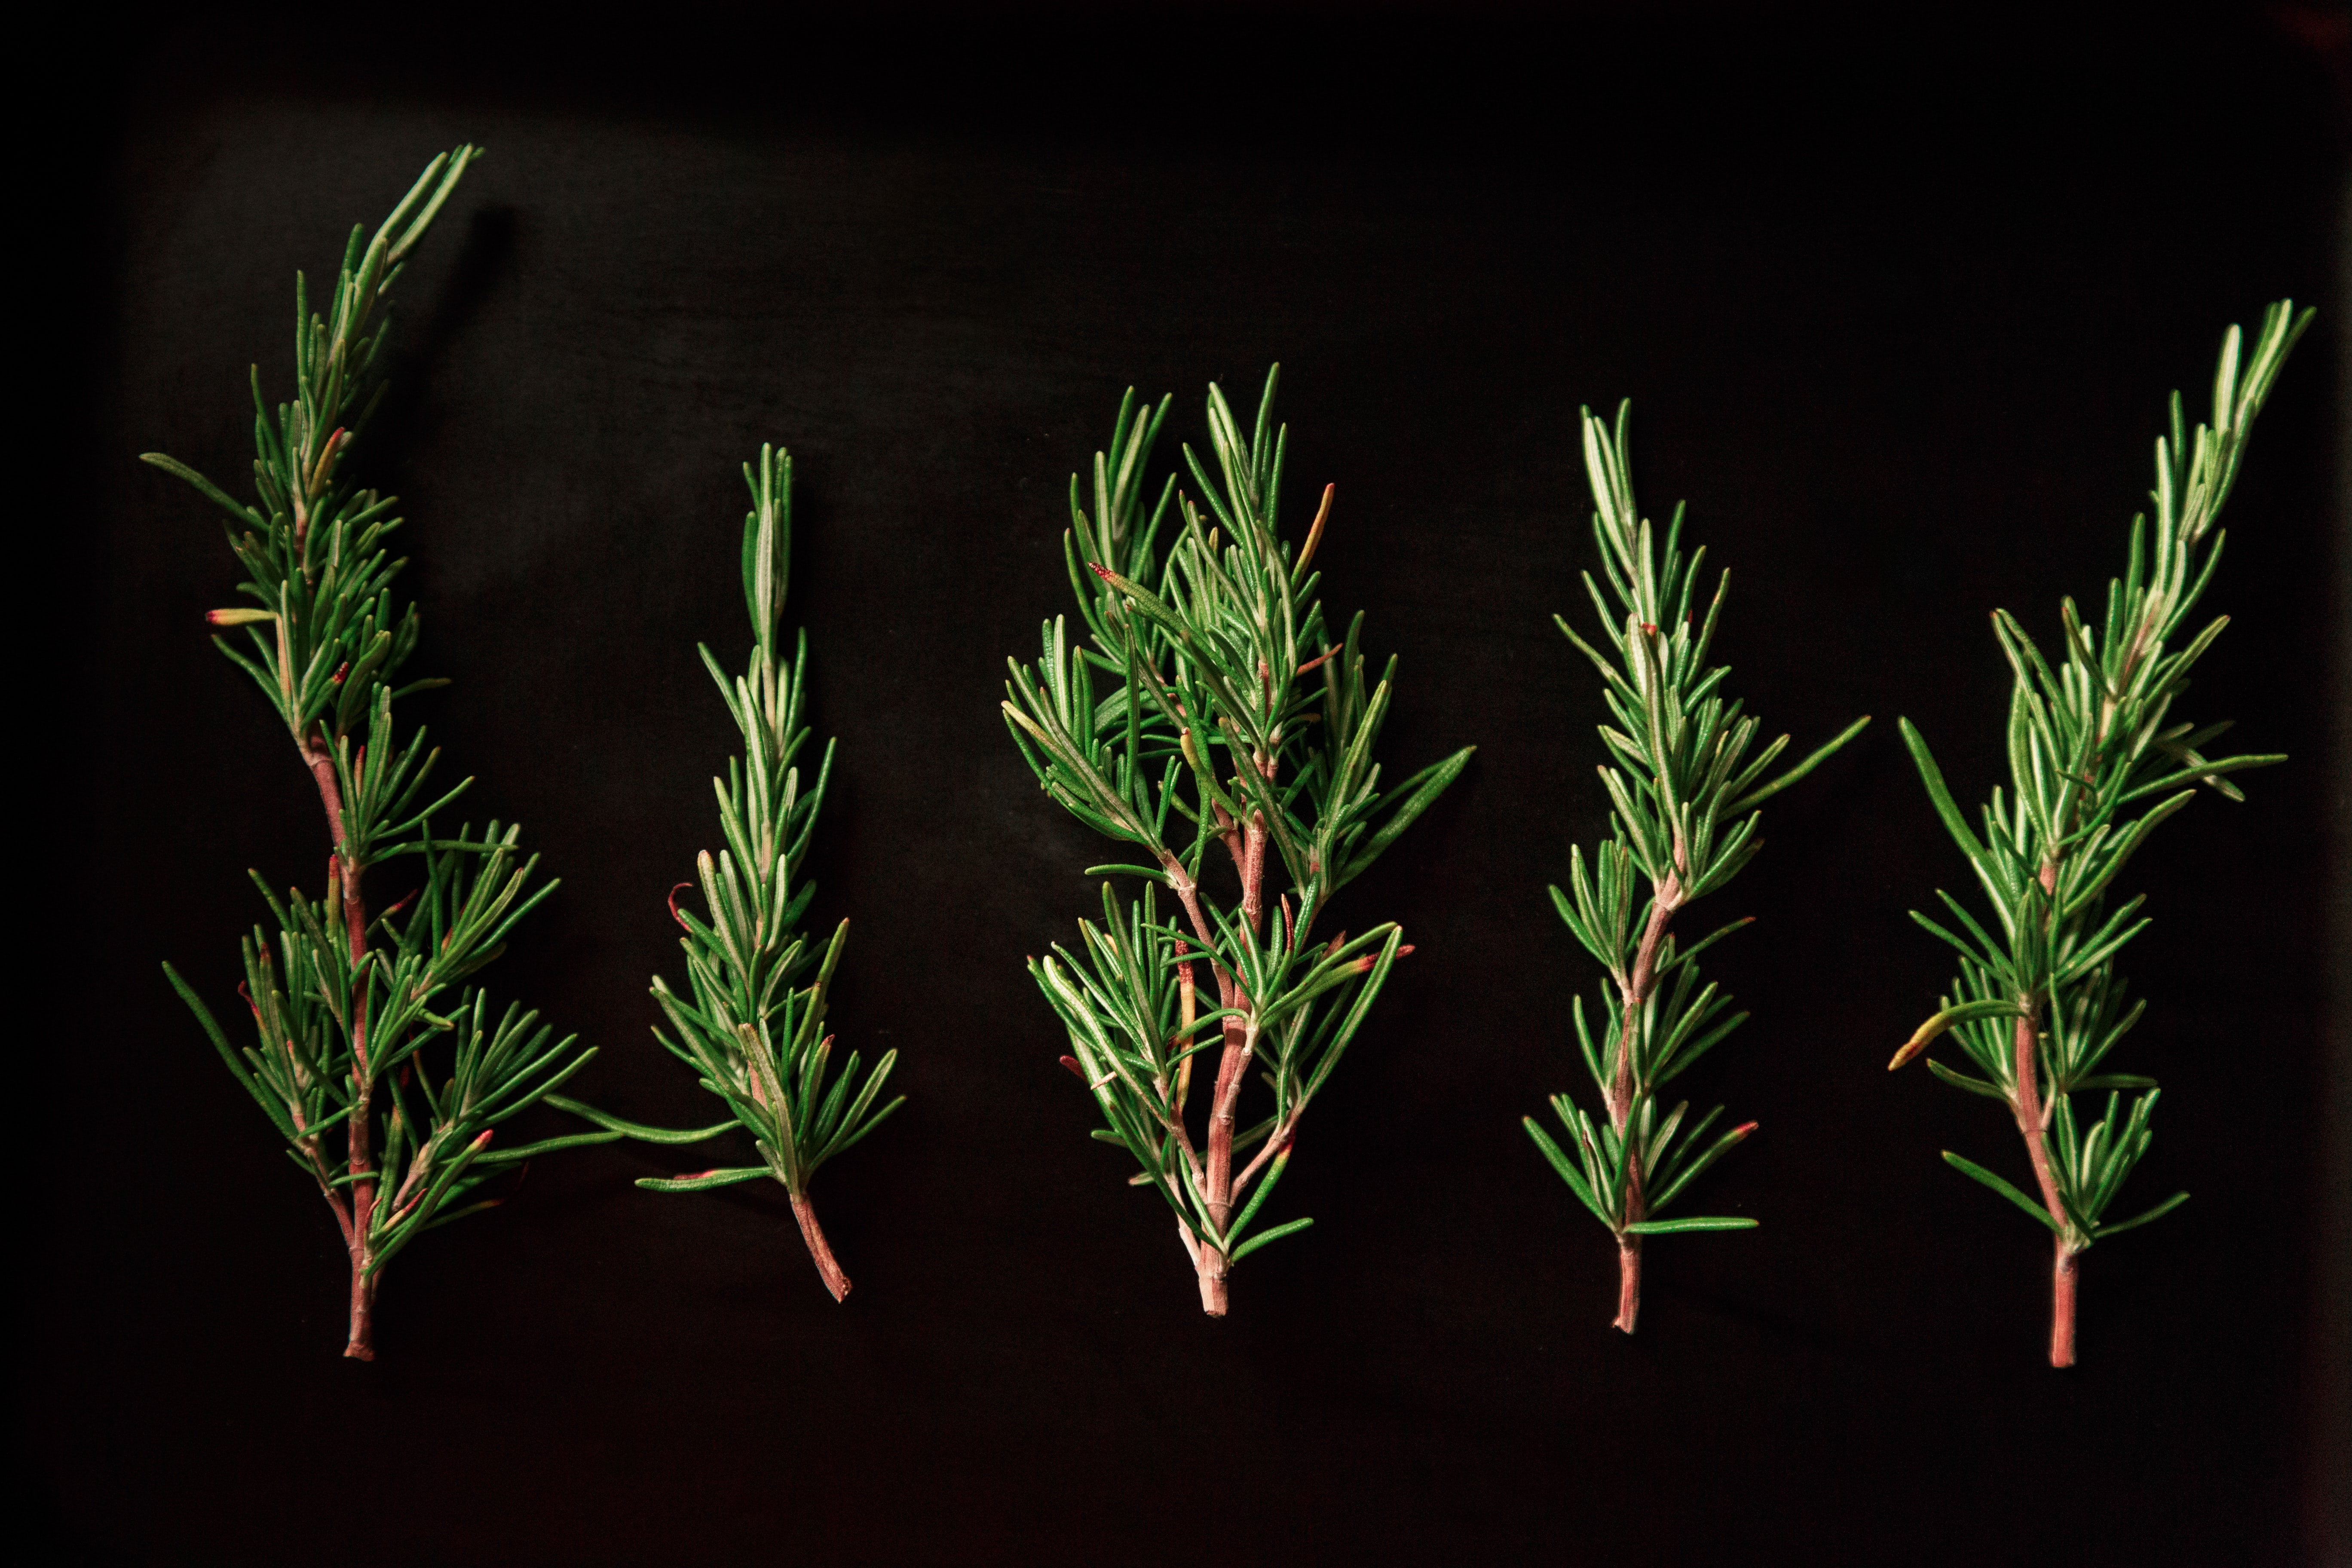 five green pine twigs